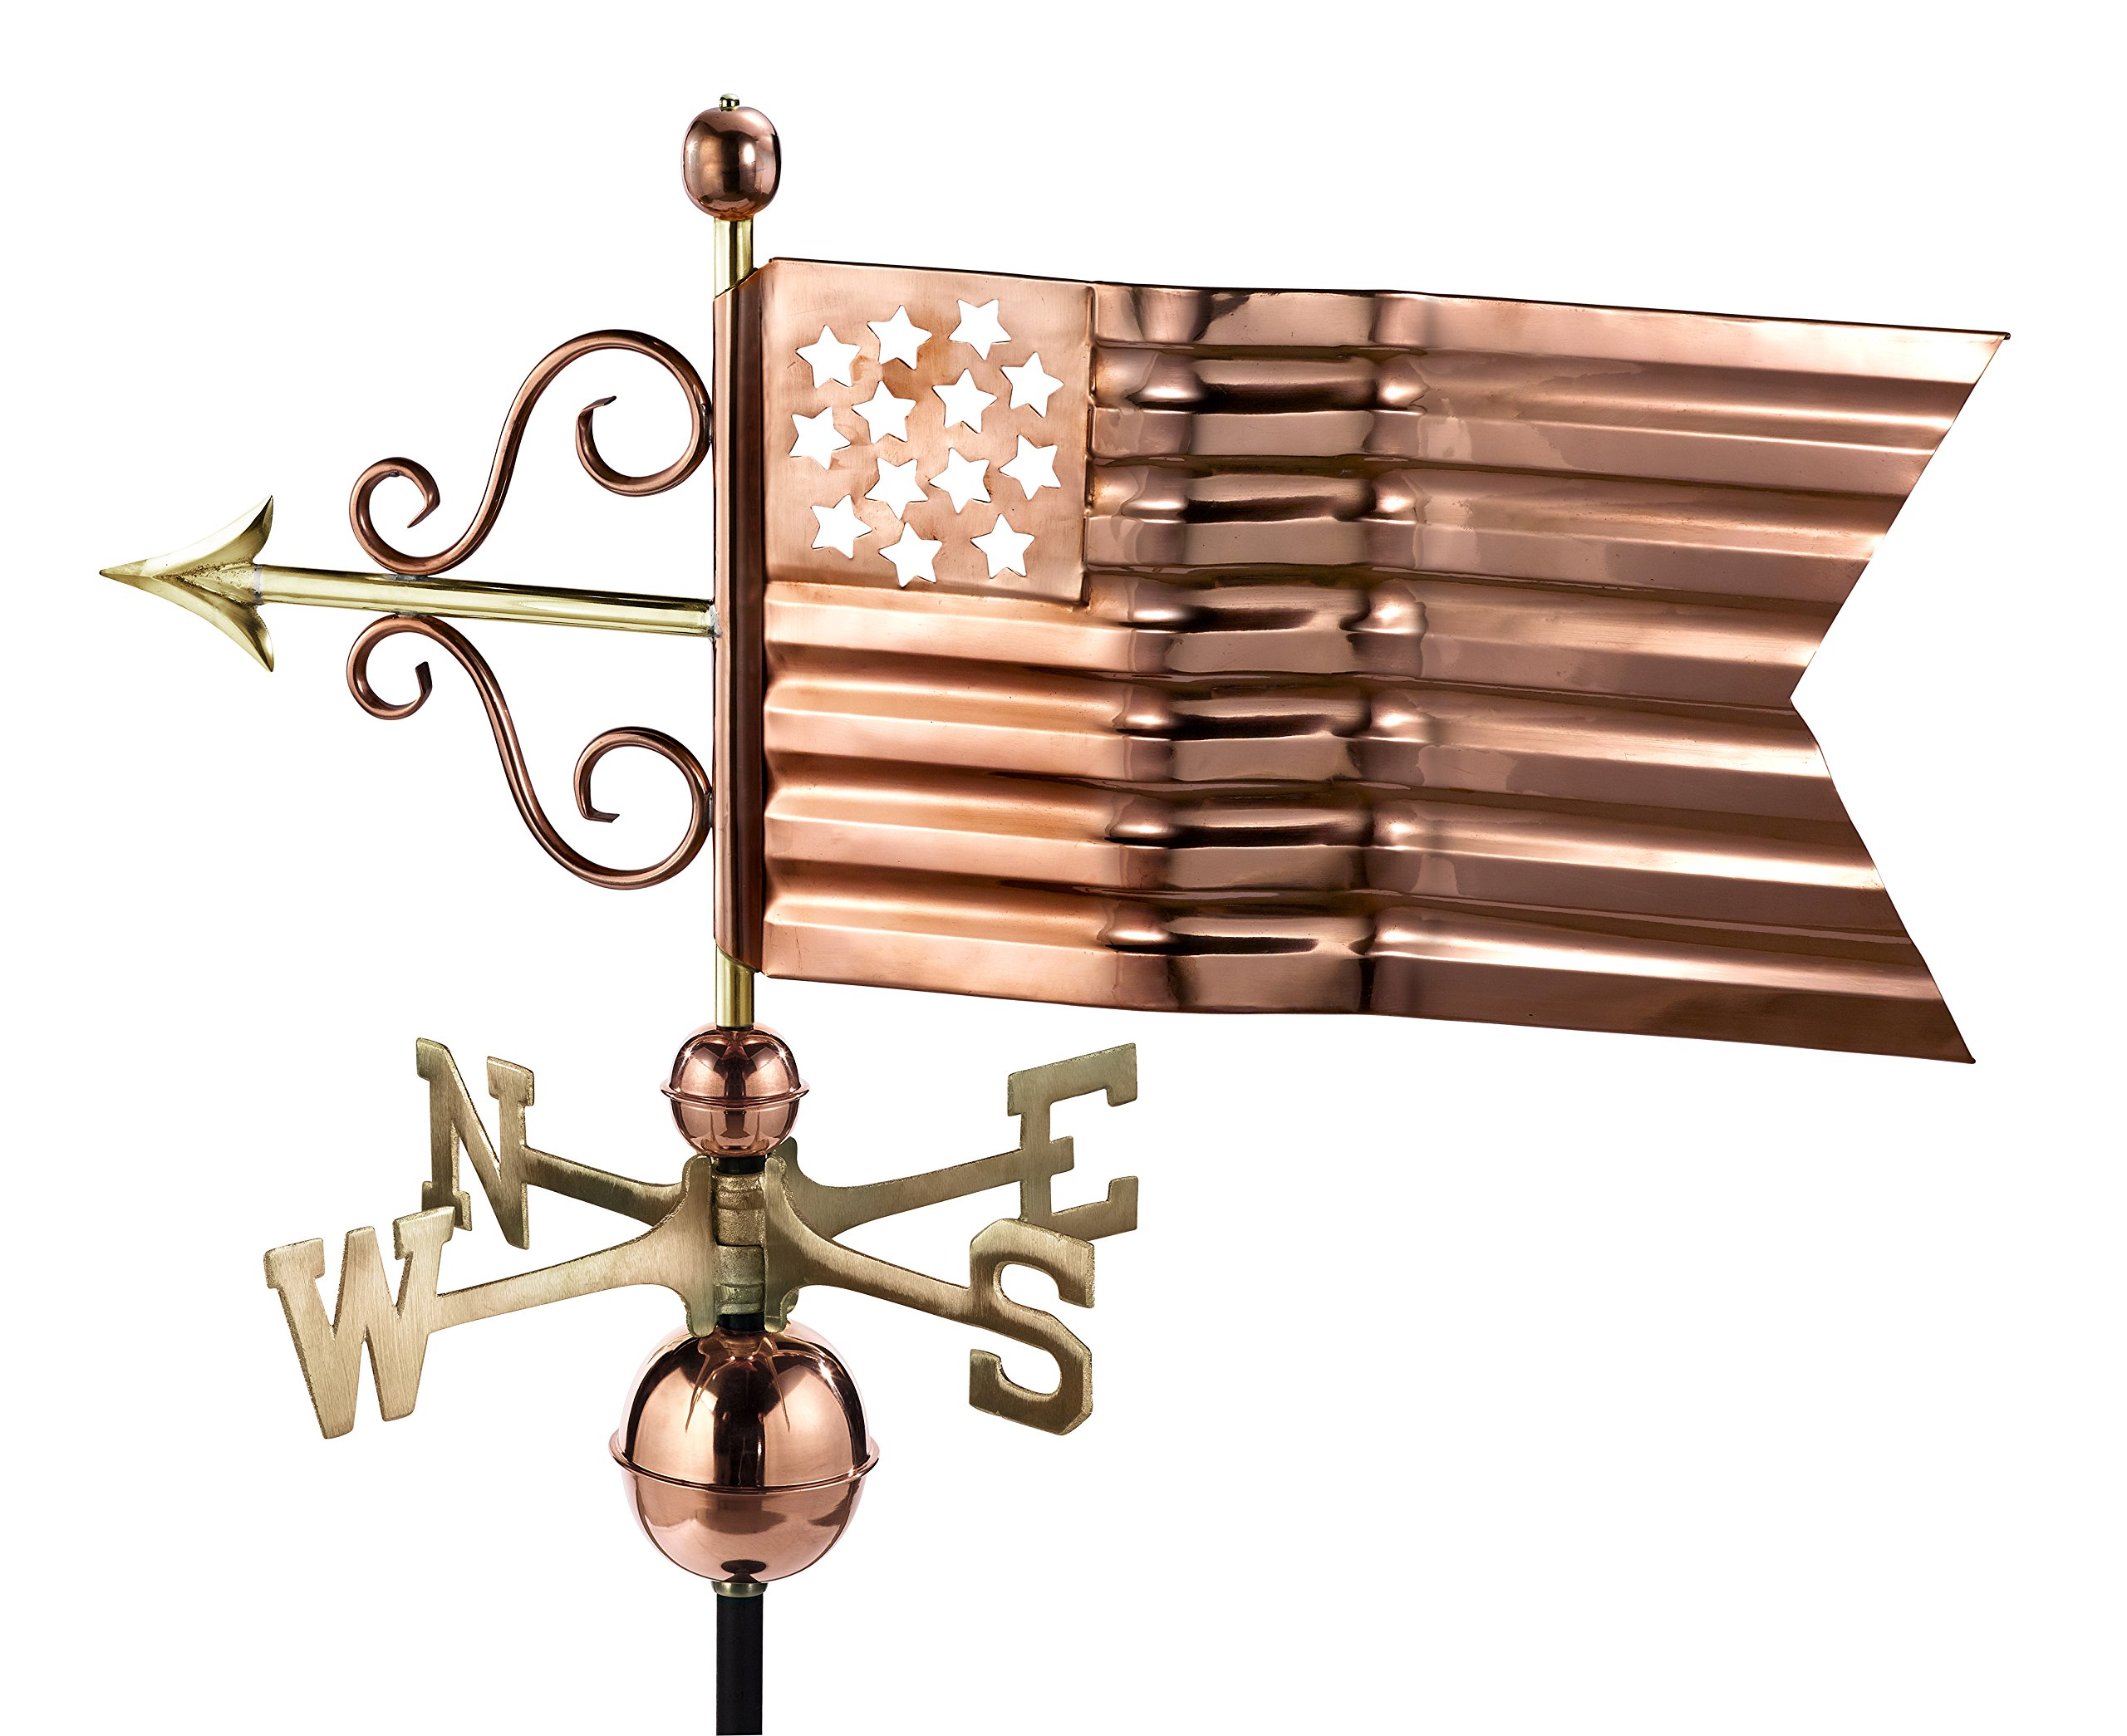 Good Directions American Flag Weathervane, Pure Copper by Good Directions